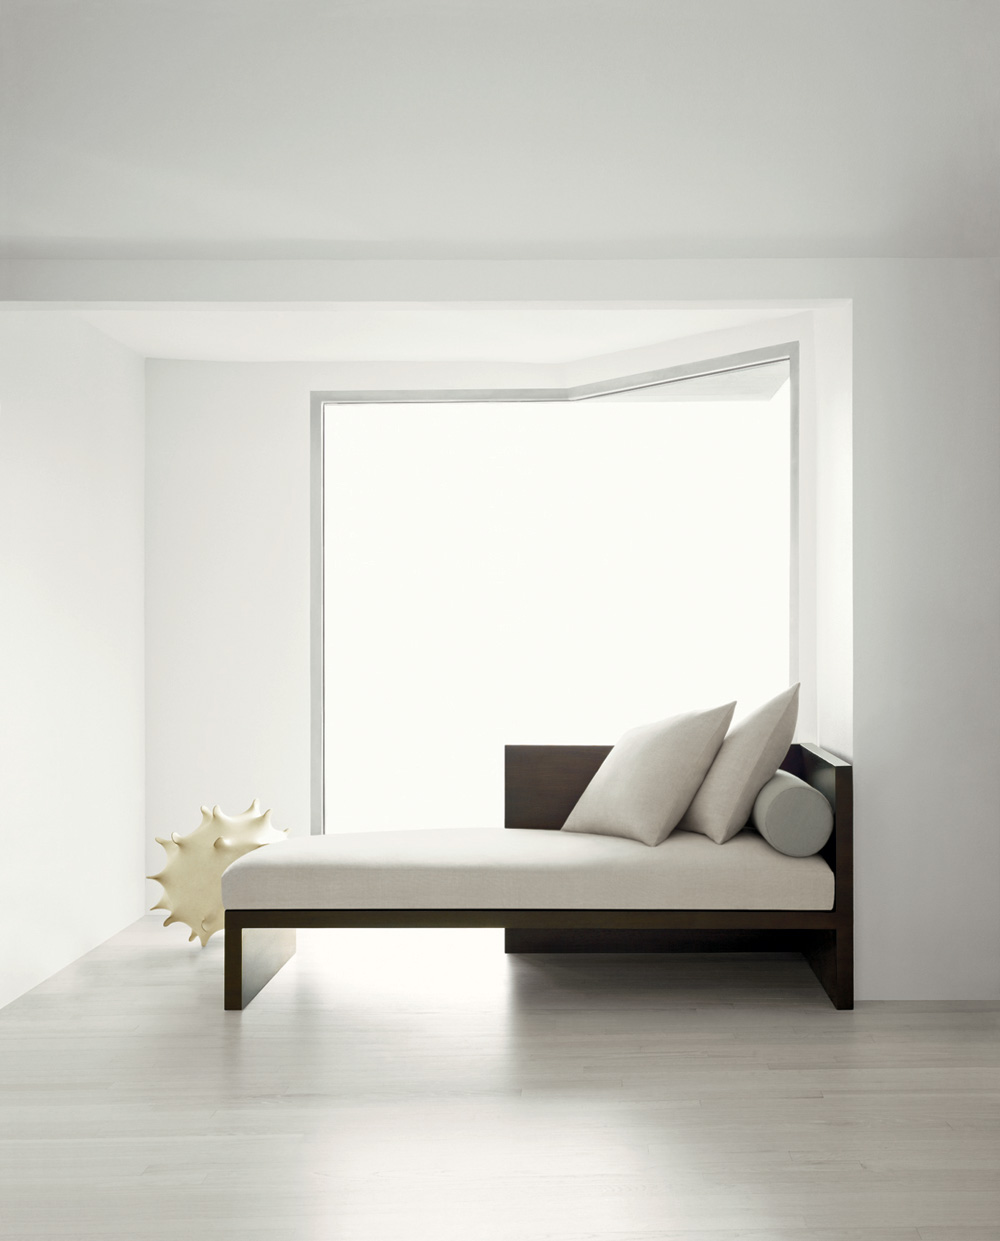 calvin klein home opens lifestyle shop and debuts curator. Black Bedroom Furniture Sets. Home Design Ideas